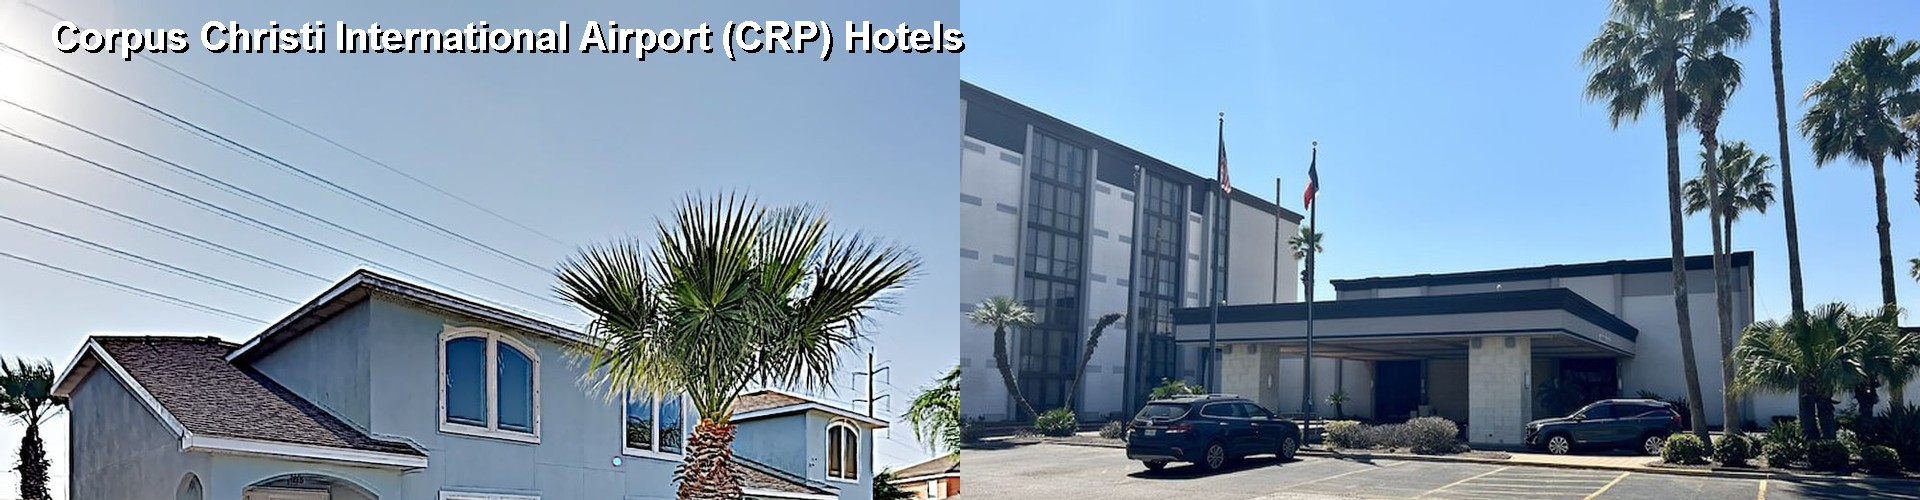 5 Best Hotels near Corpus Christi International Airport (CRP)